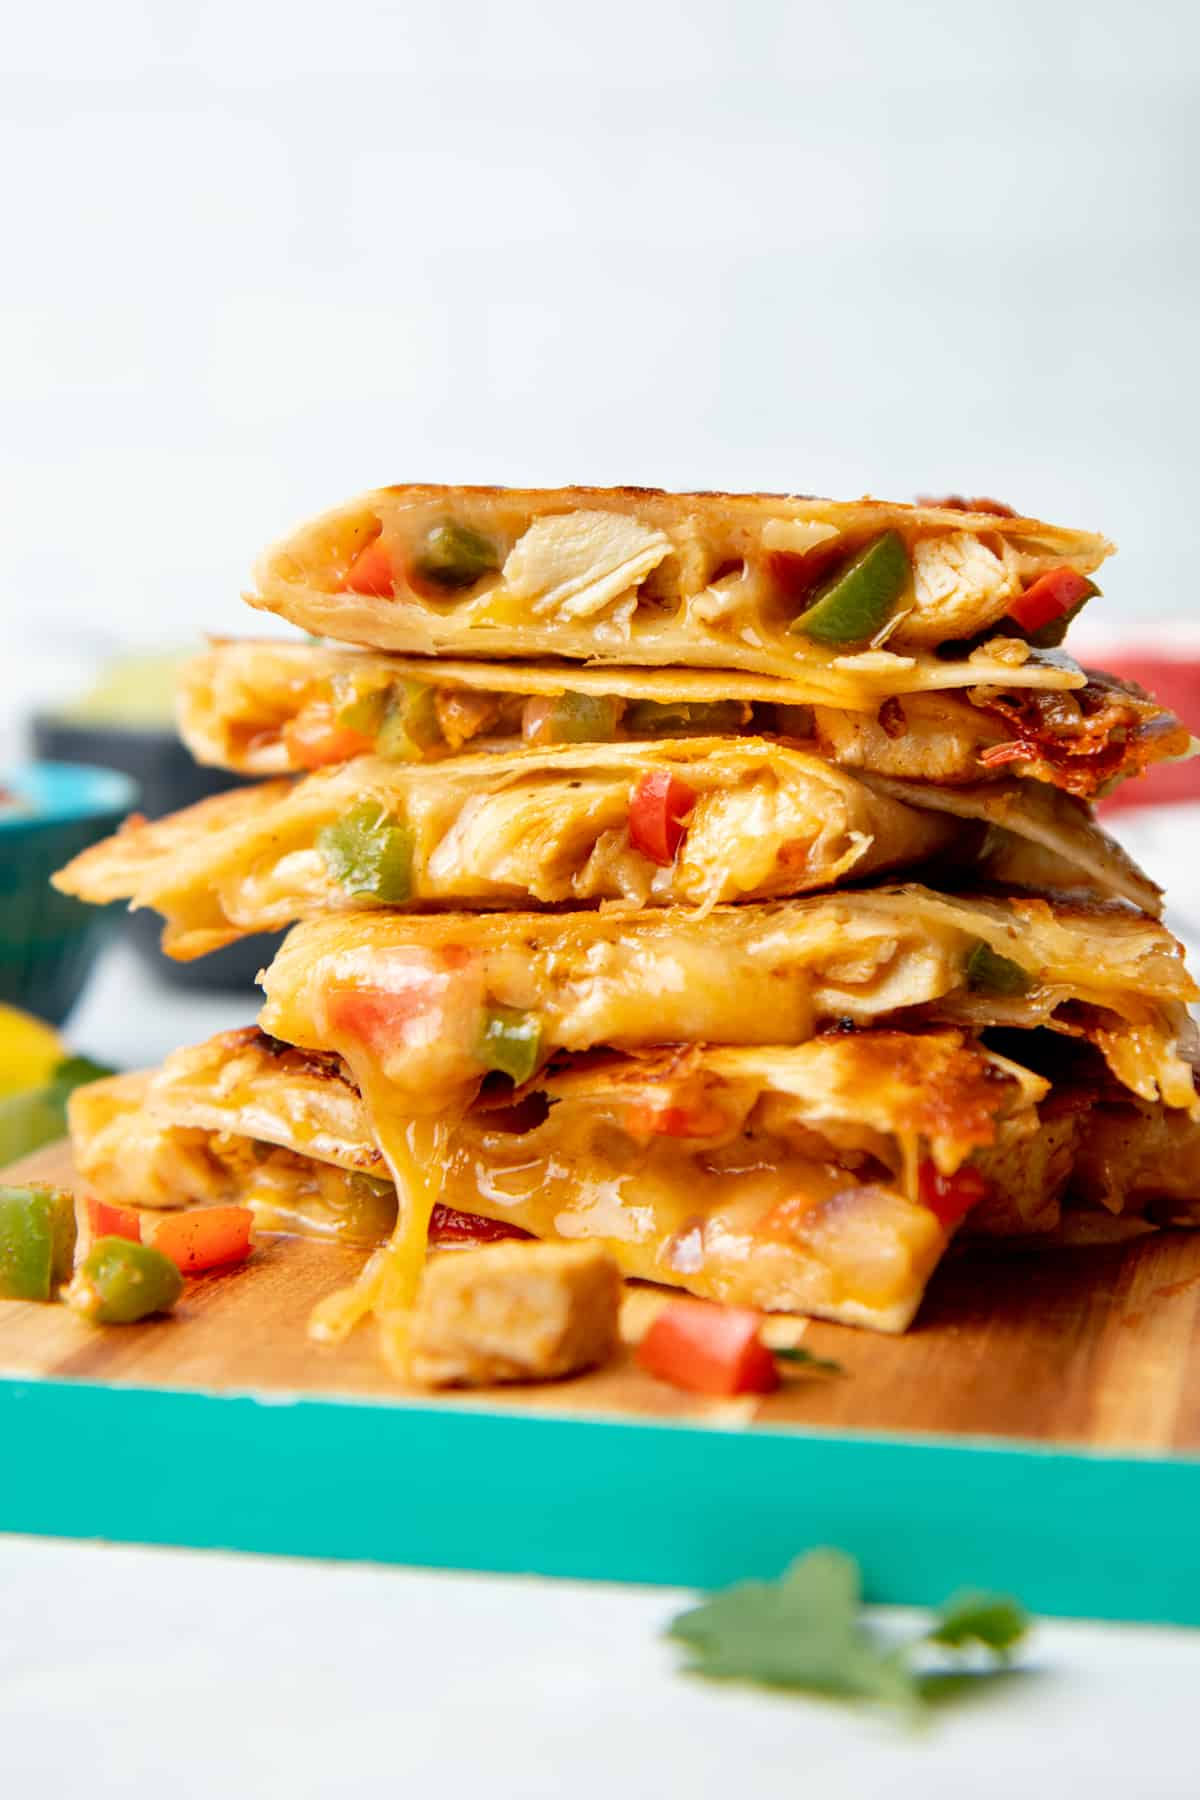 Chicken quesadillas are stacked on a wooden cutting board. The board has a teal edge.